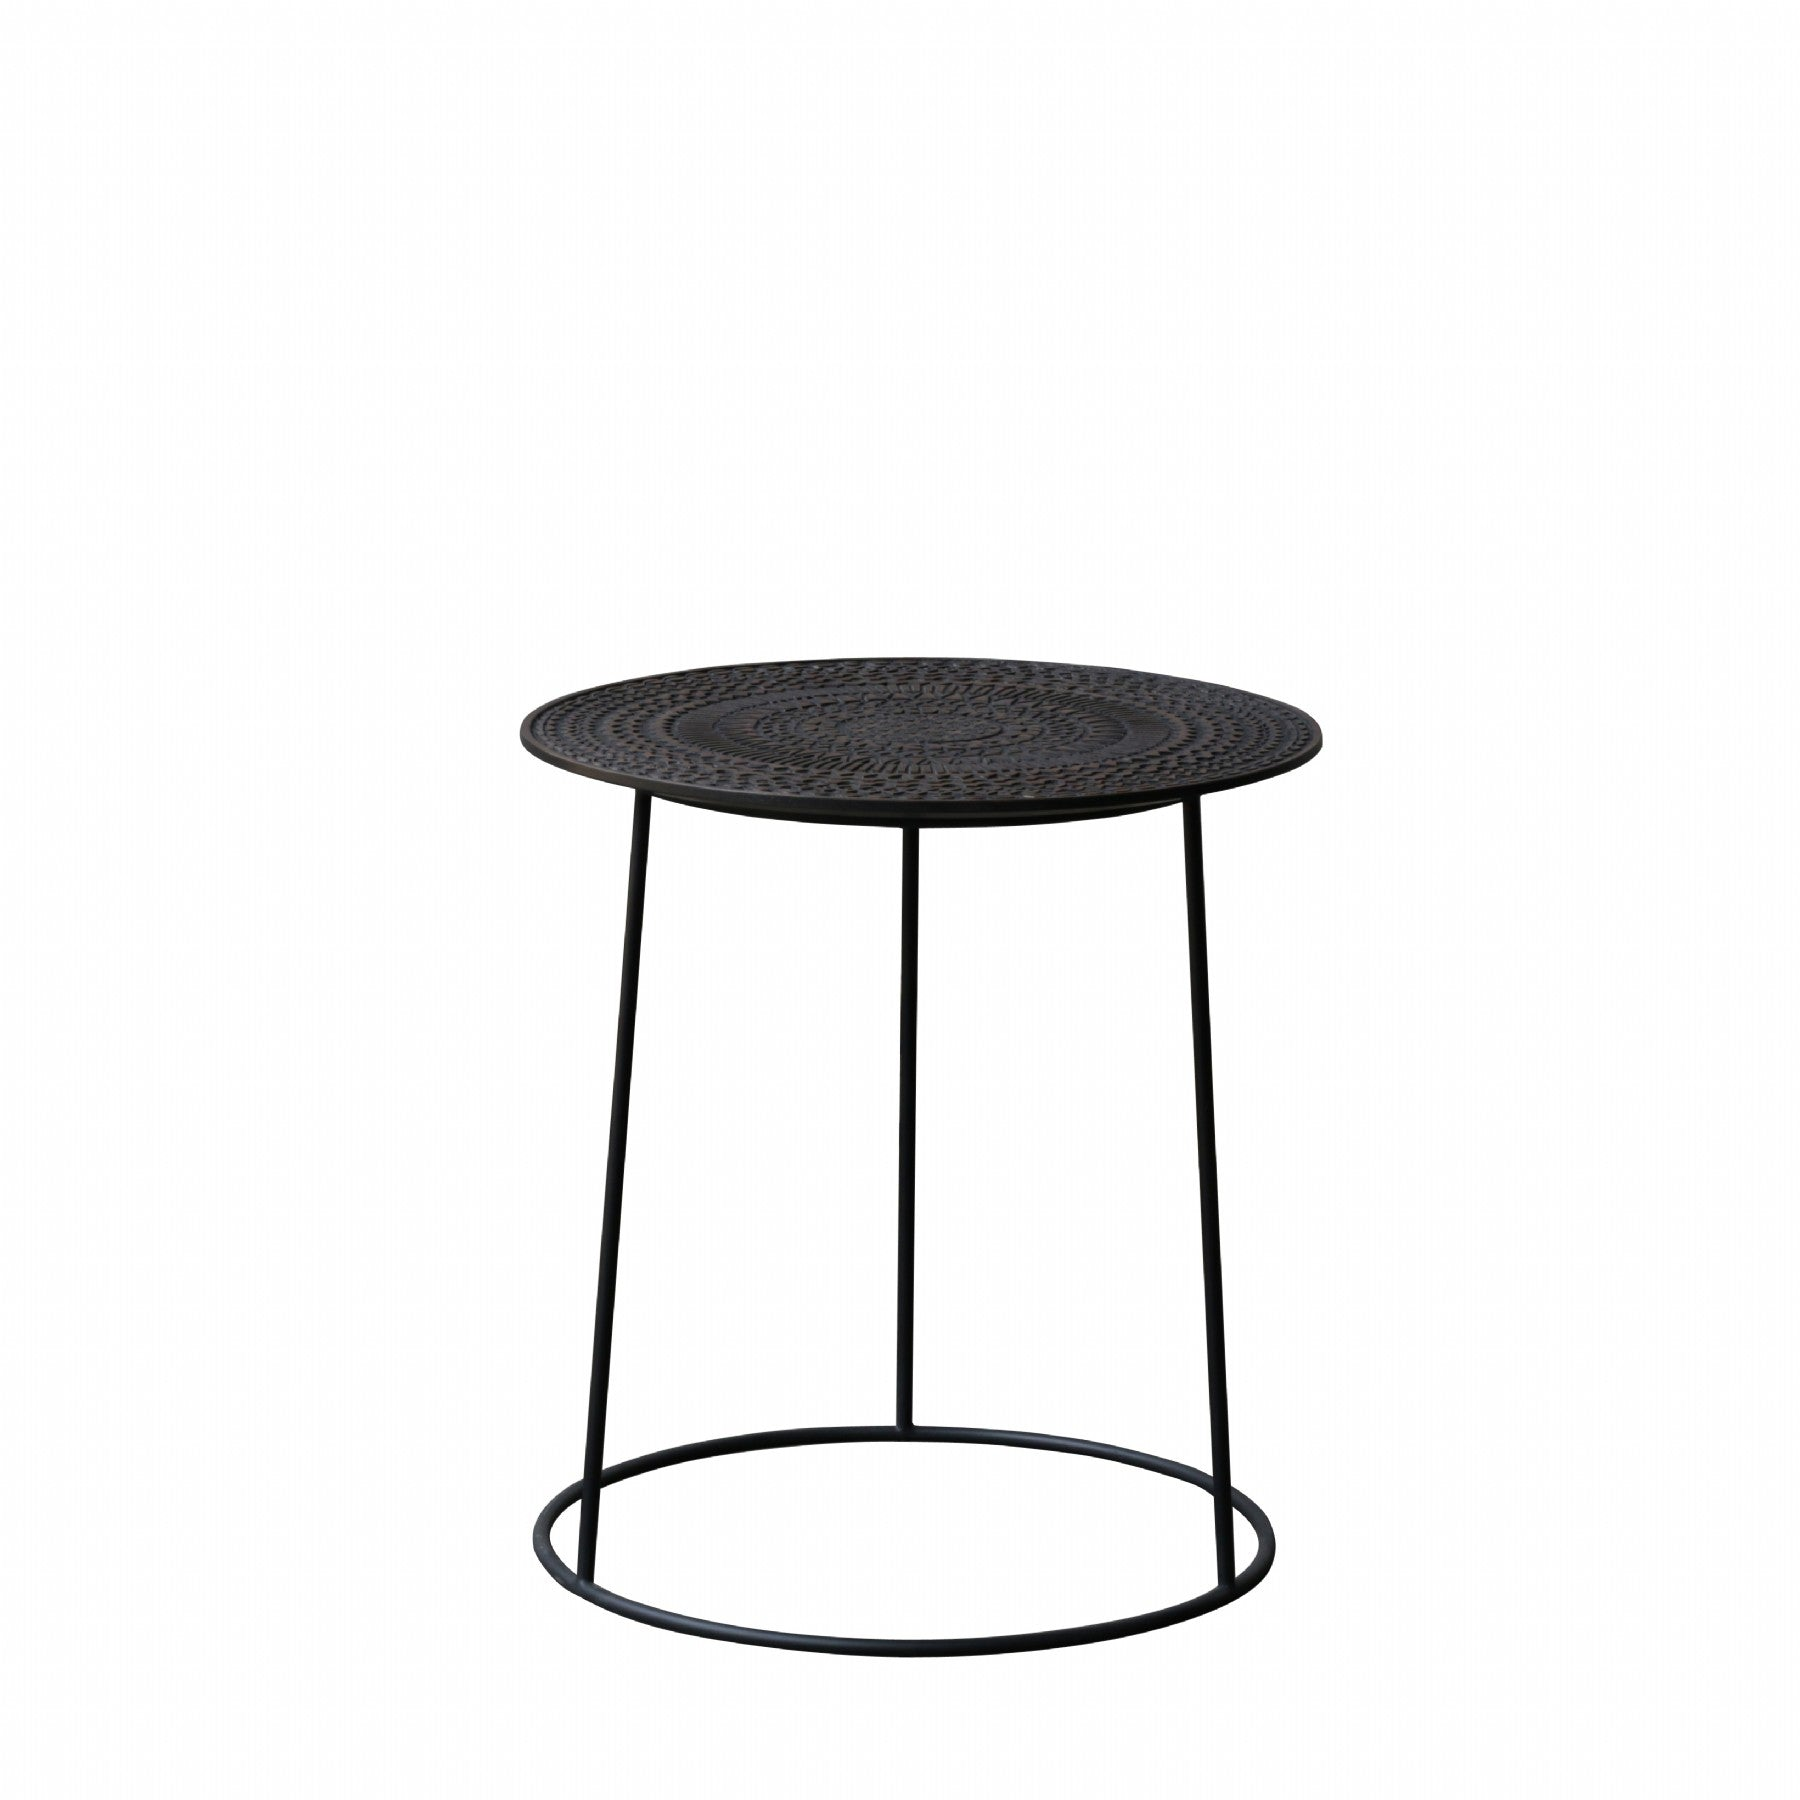 buy Ethnicraft Ancestors Tabwa side table online